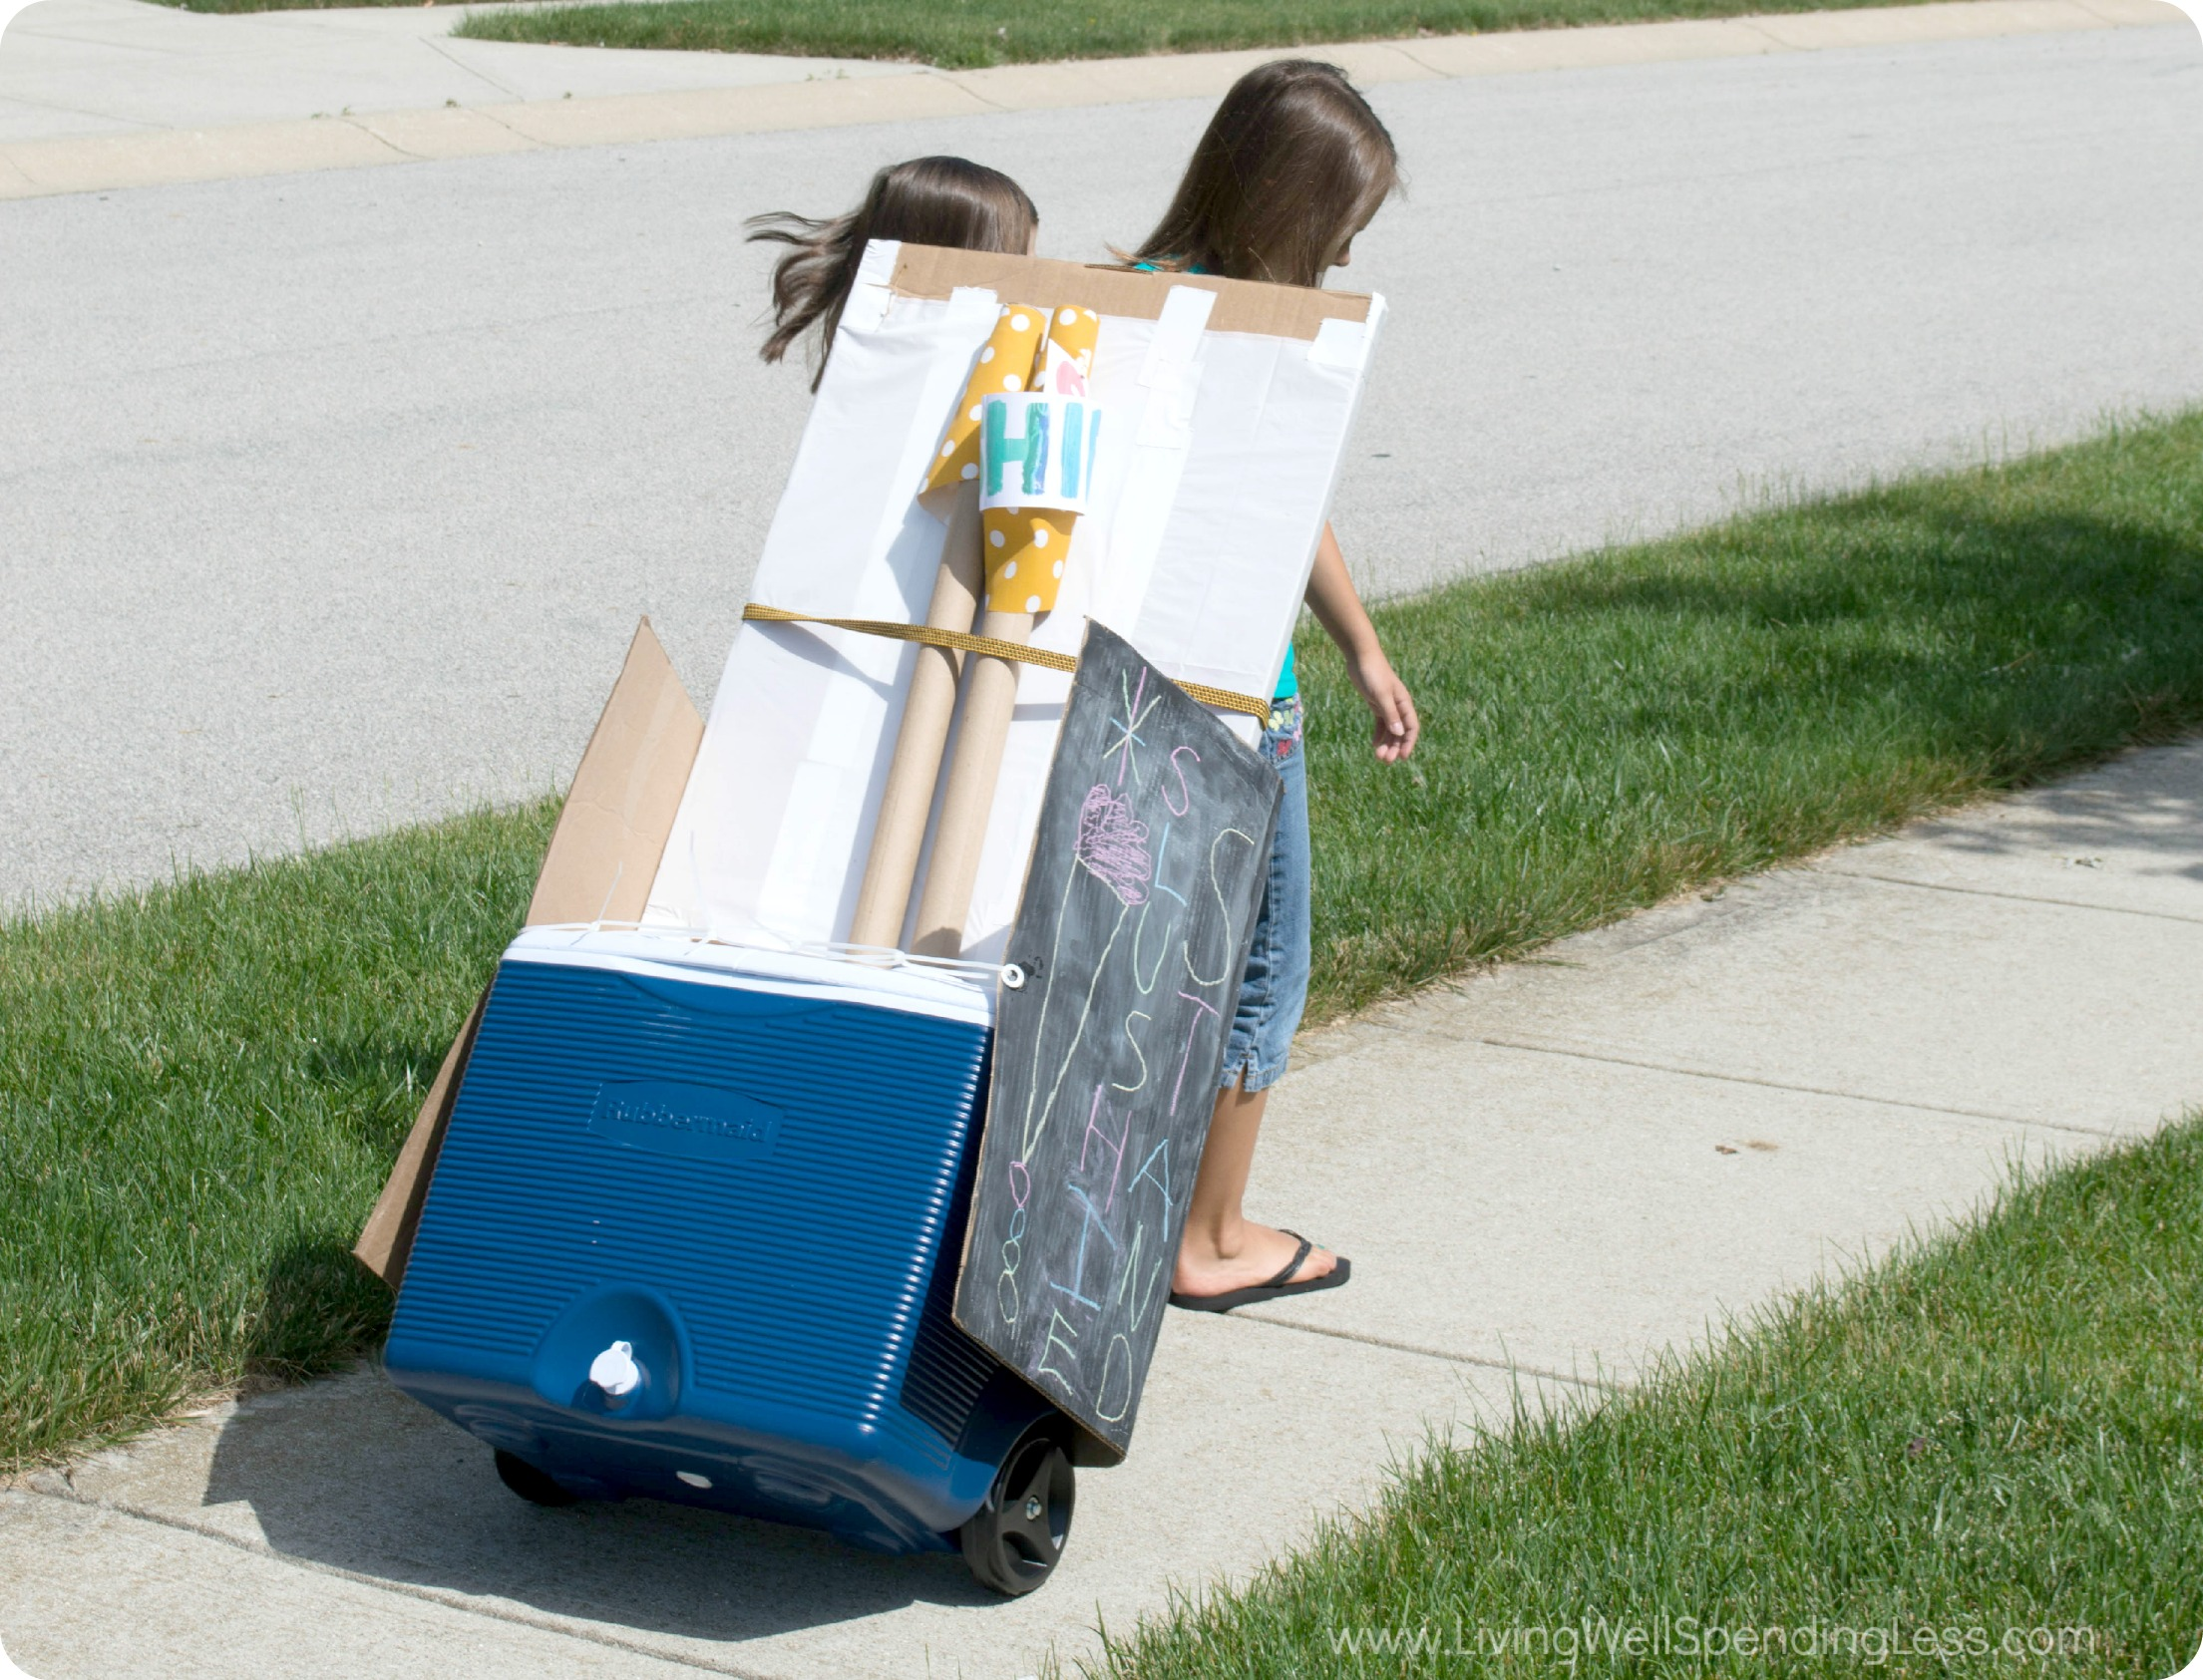 Your kids are in business with this rolling DIY slushie stand